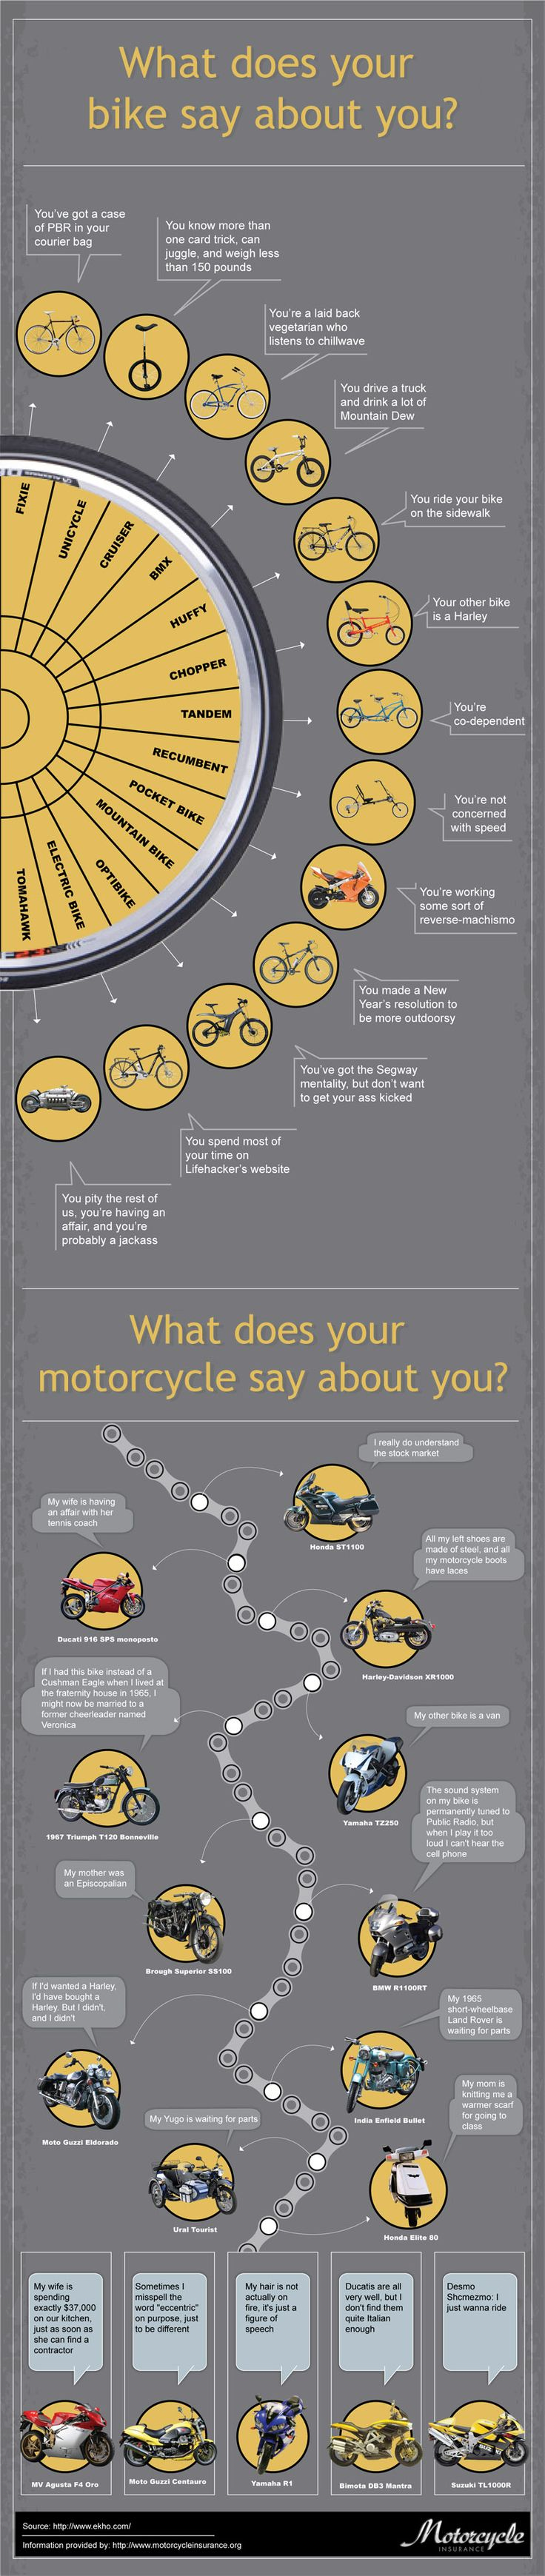 What Statement Does Your Motorcycle Make?   MotorcycleInsurance.com